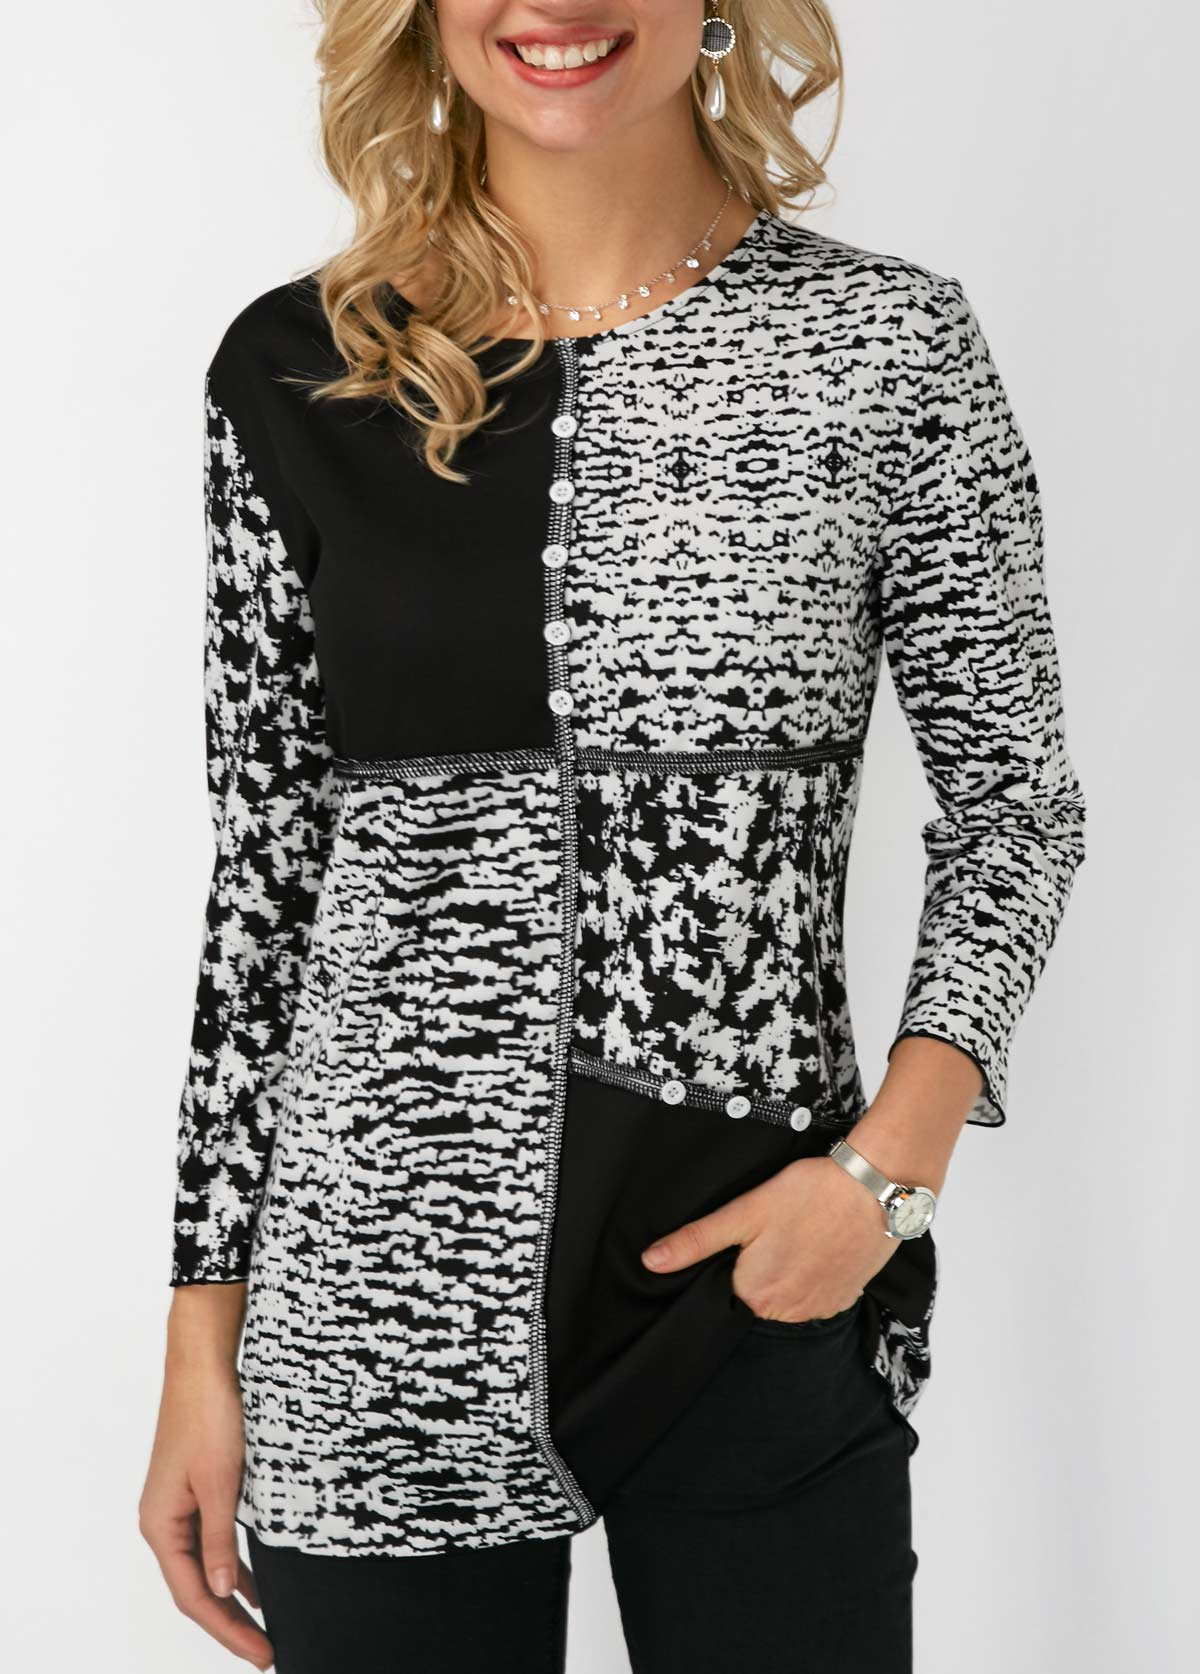 Printed Button Detail Round Neck Blouse | Rosewe.com - USD ...